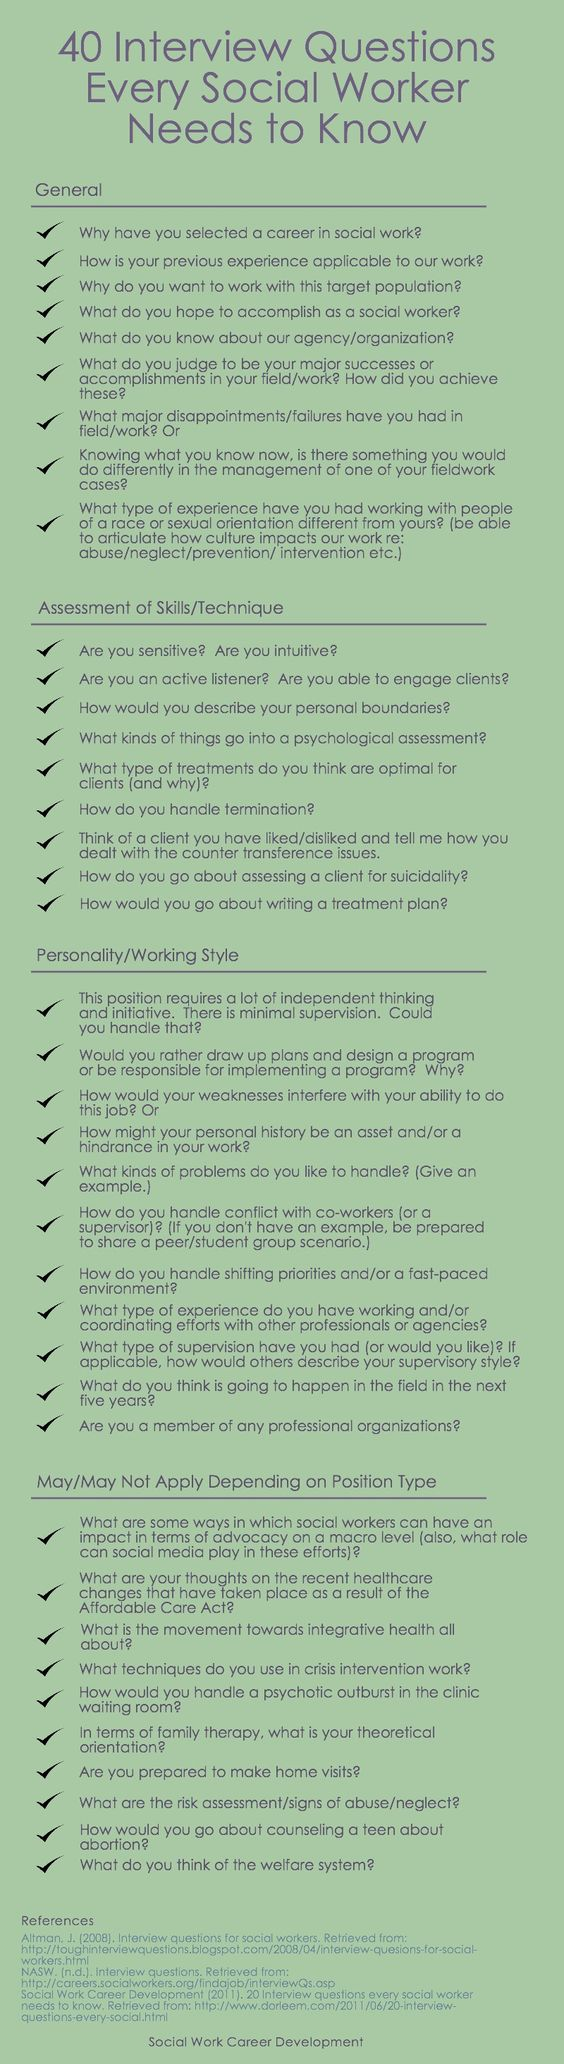 40 interview questions every social worker needs to know social work pinterest profesiones - Social Work Interview Questions For Social Workers